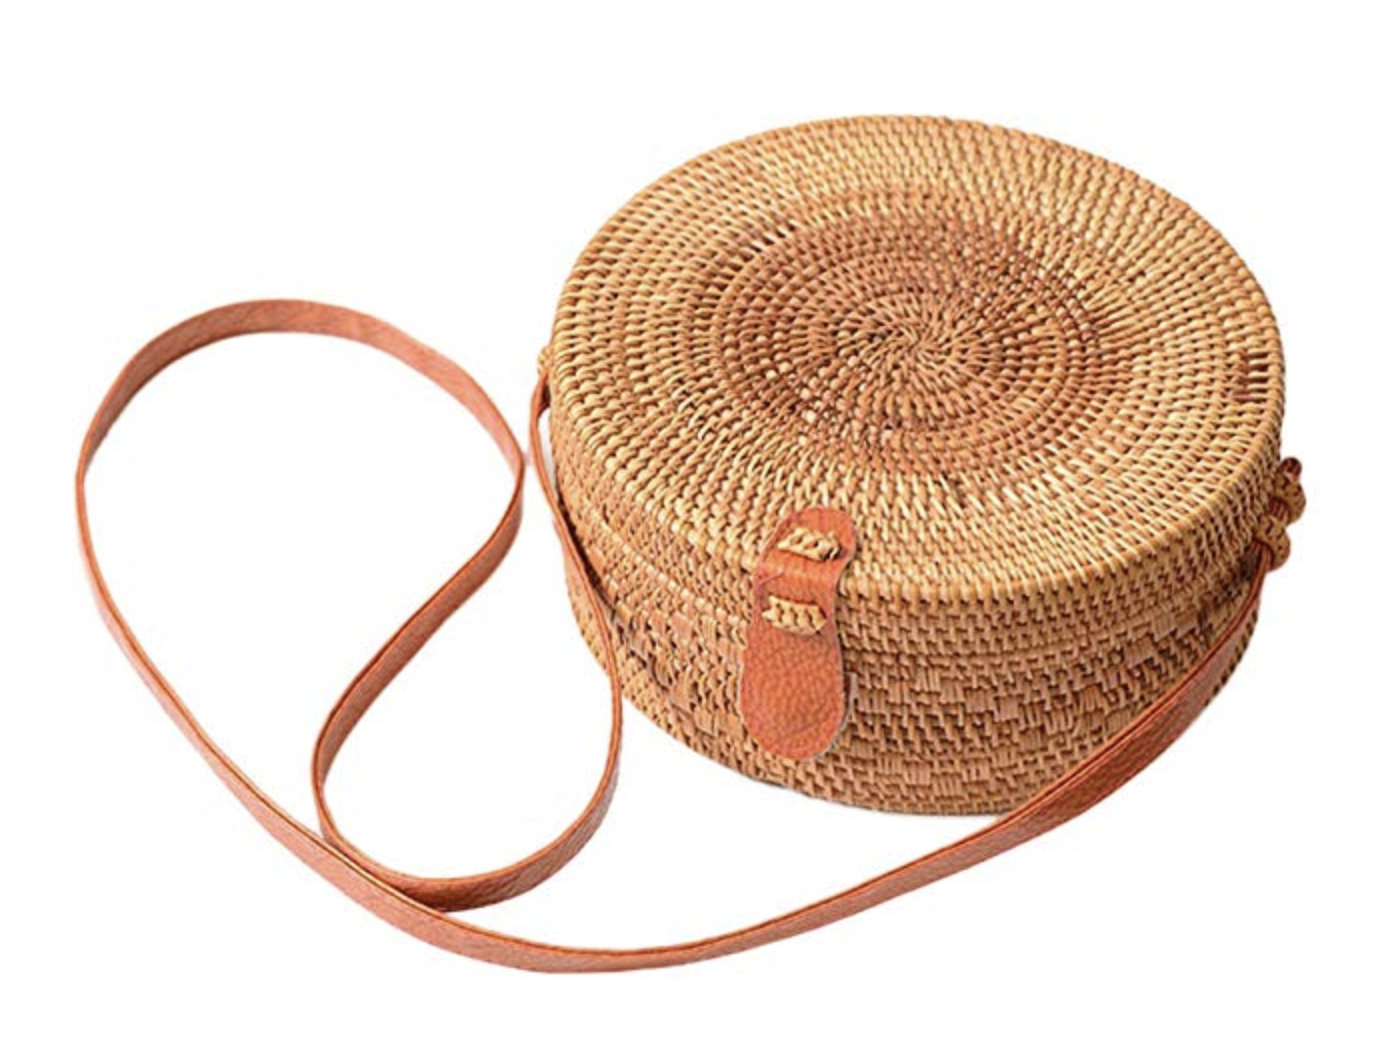 Rattan round bag with a long stripe